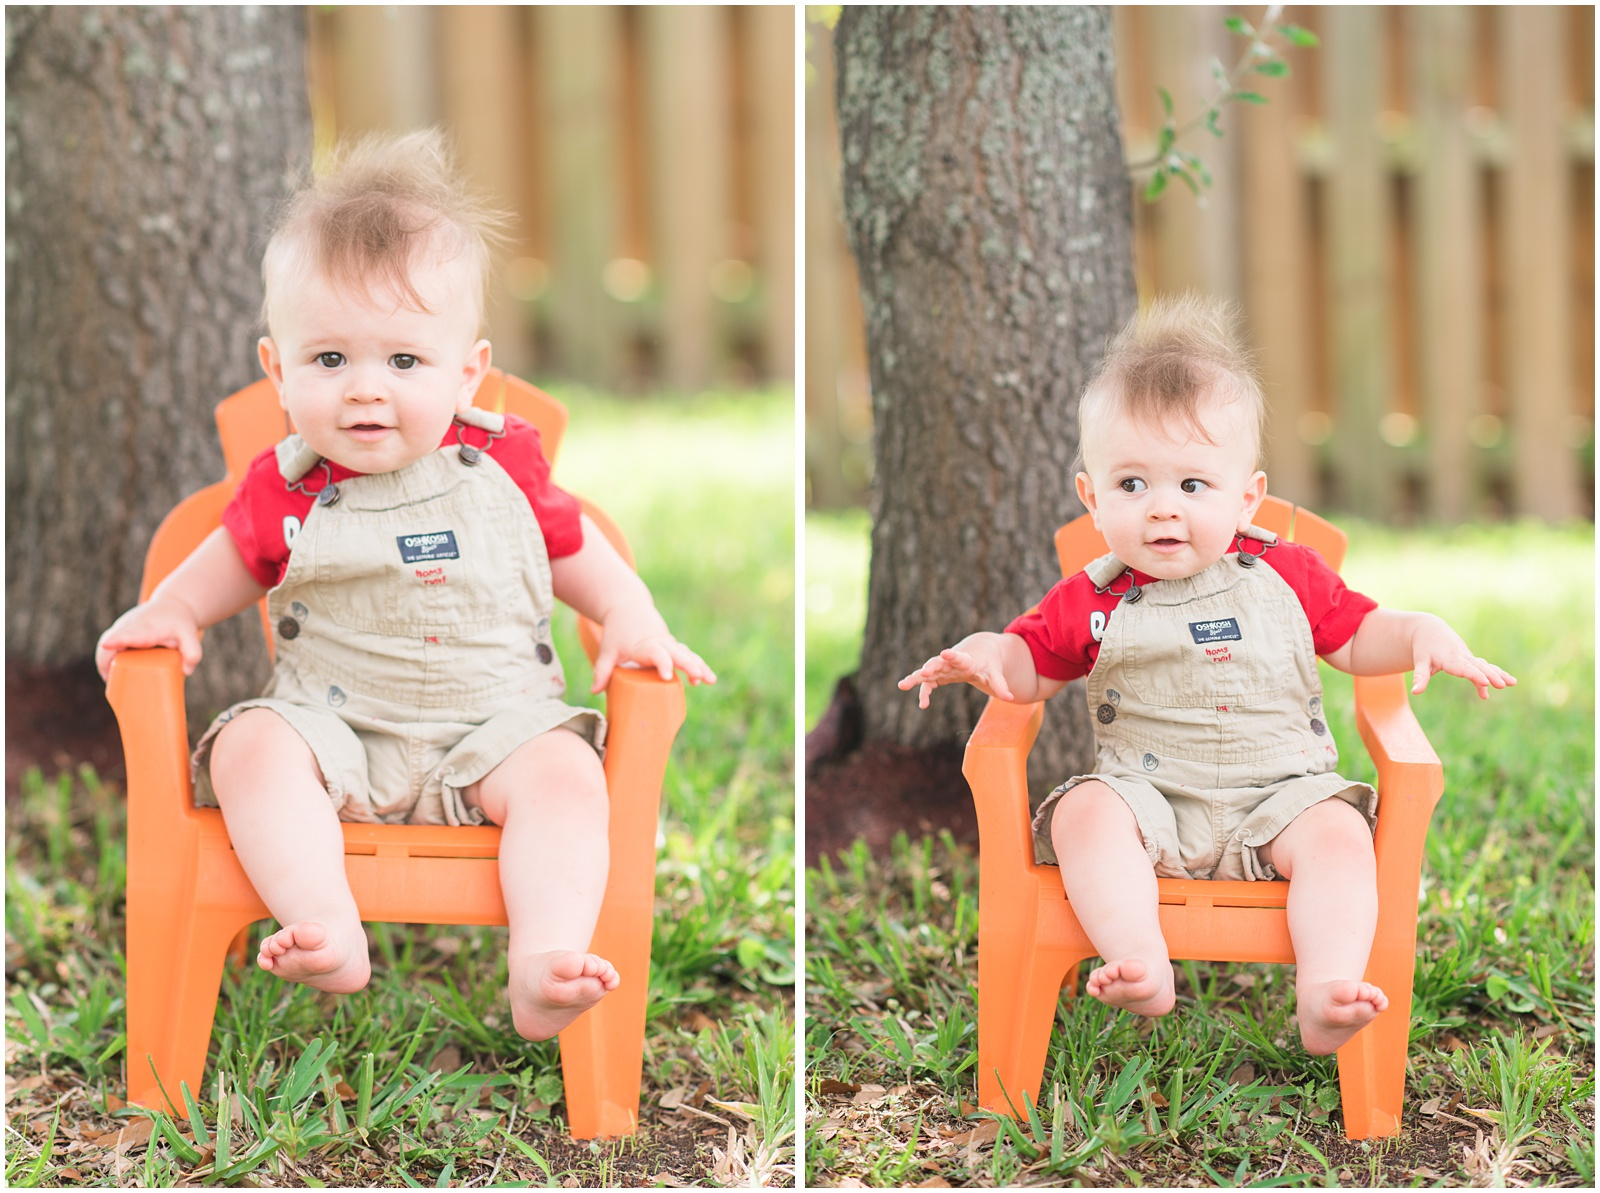 Baby_Portraits_9 Months_Family_Siblings_Growing Up_8.jpg